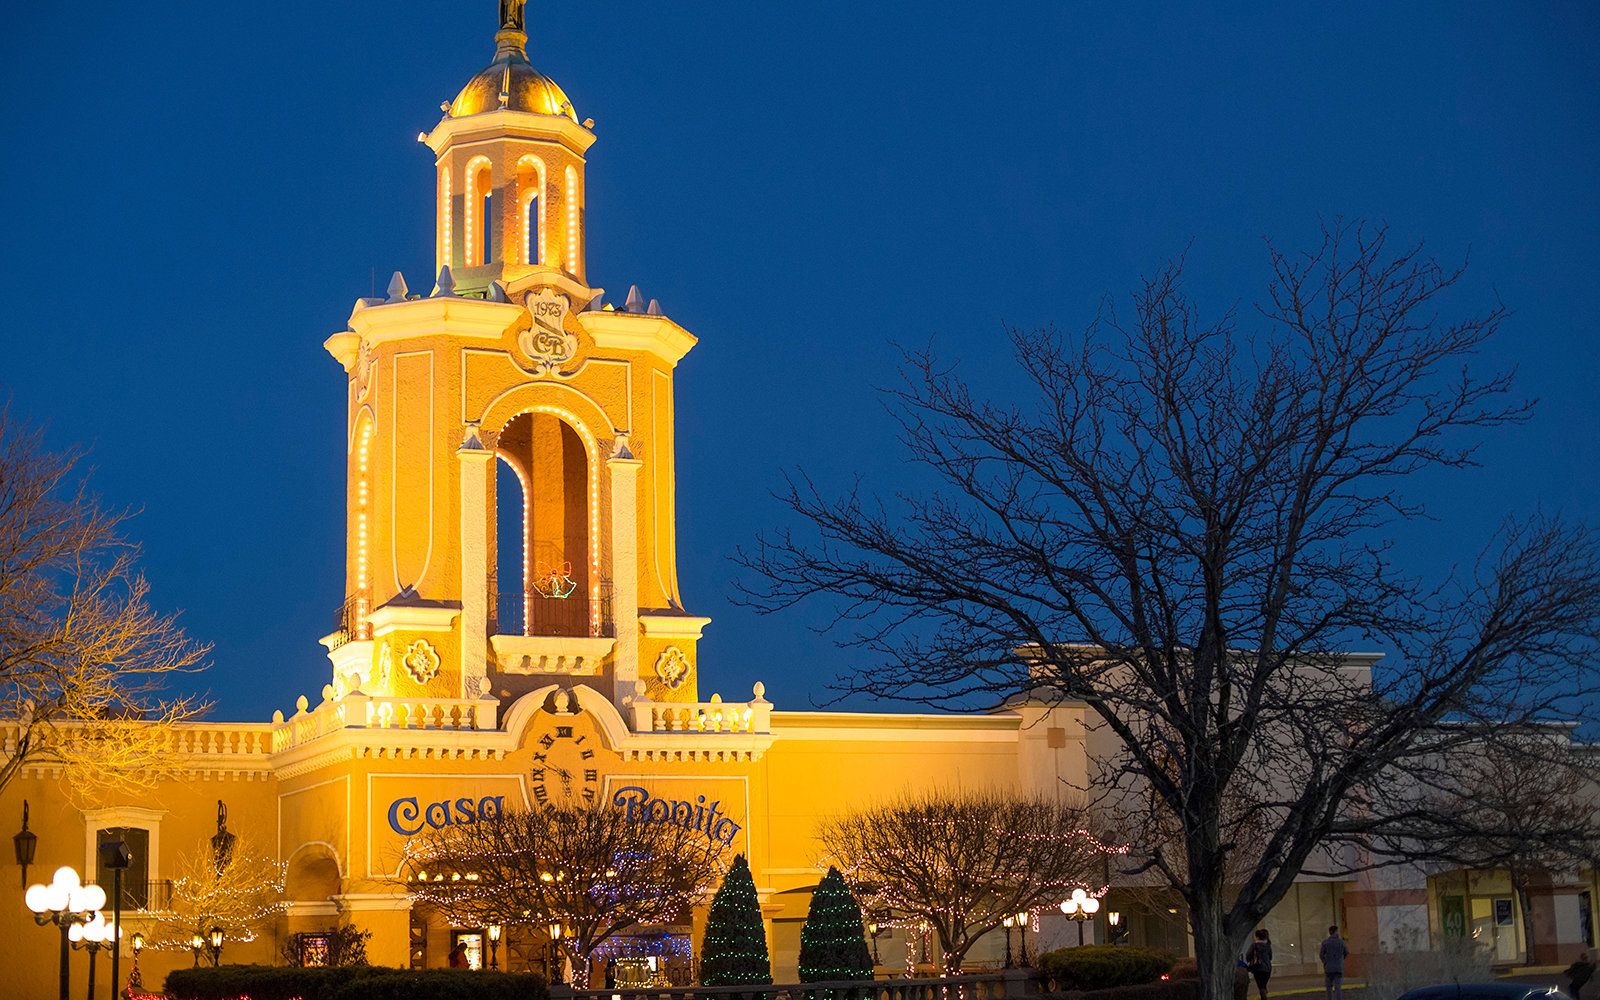 Casa Bonita restaurant in Denver